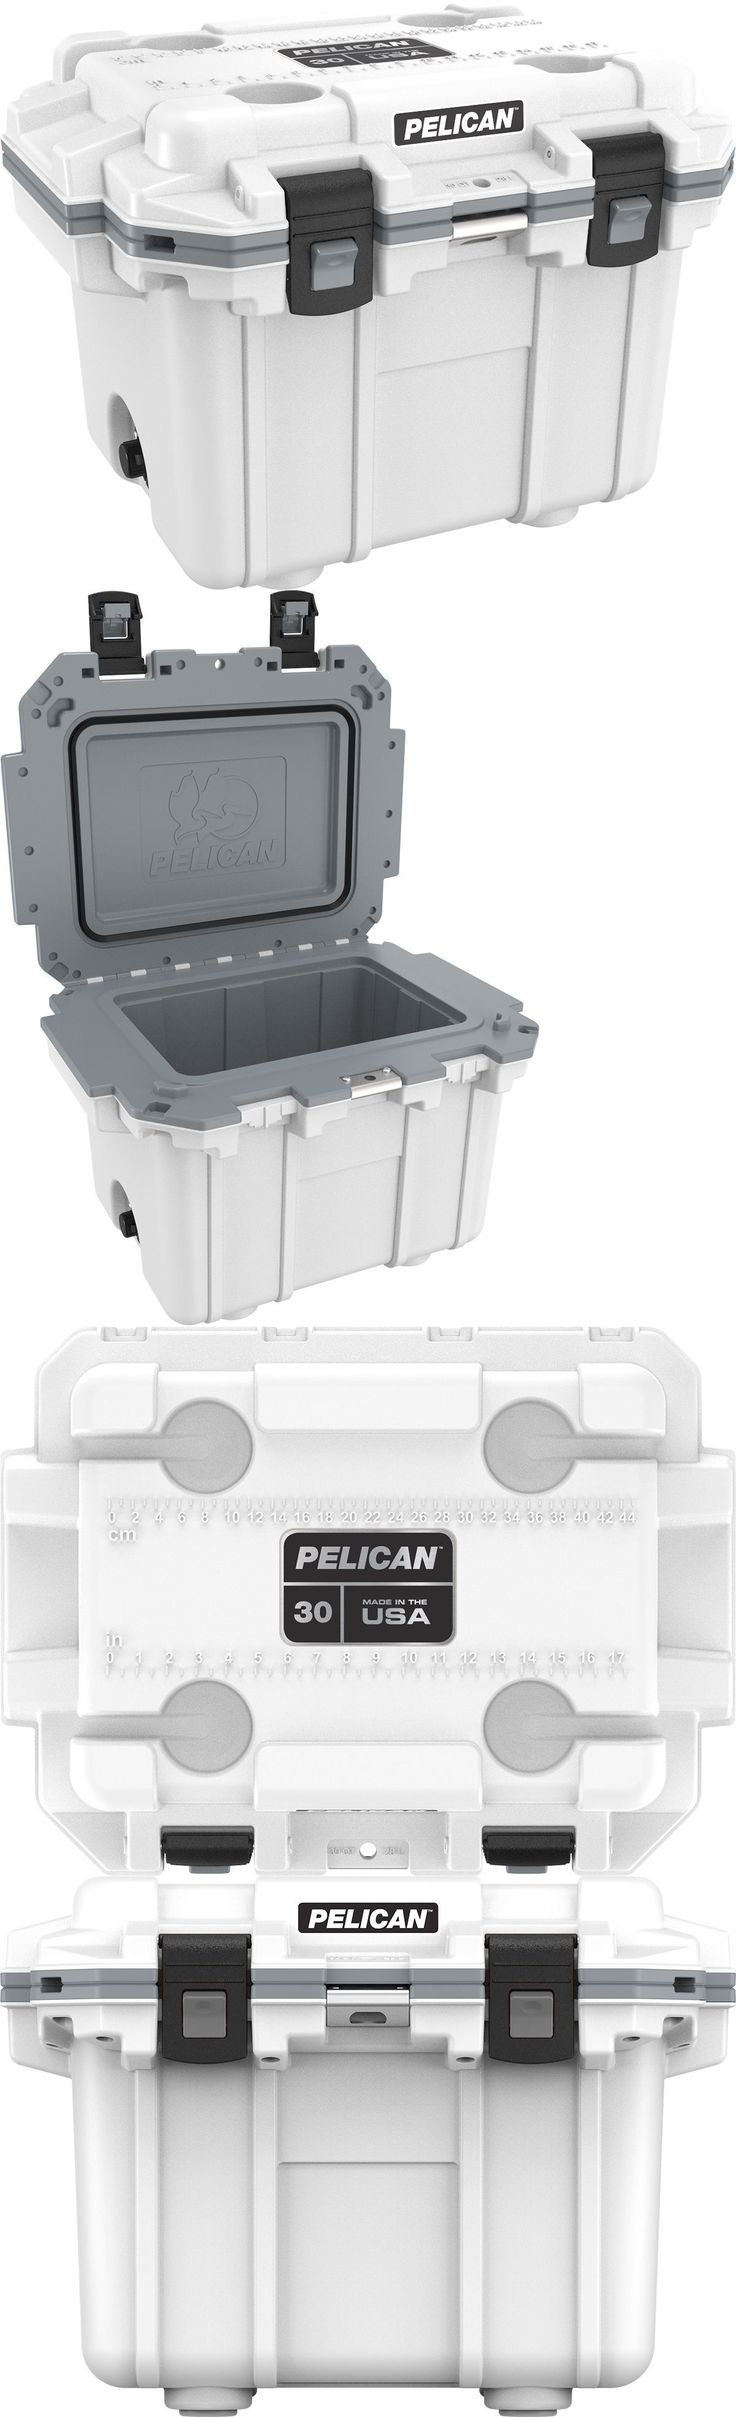 Camping Ice Boxes and Coolers 181382: Pelican Products 30 Quart Cooler White Grey 30Q-1-Whtgry -> BUY IT NOW ONLY: $215 on eBay!